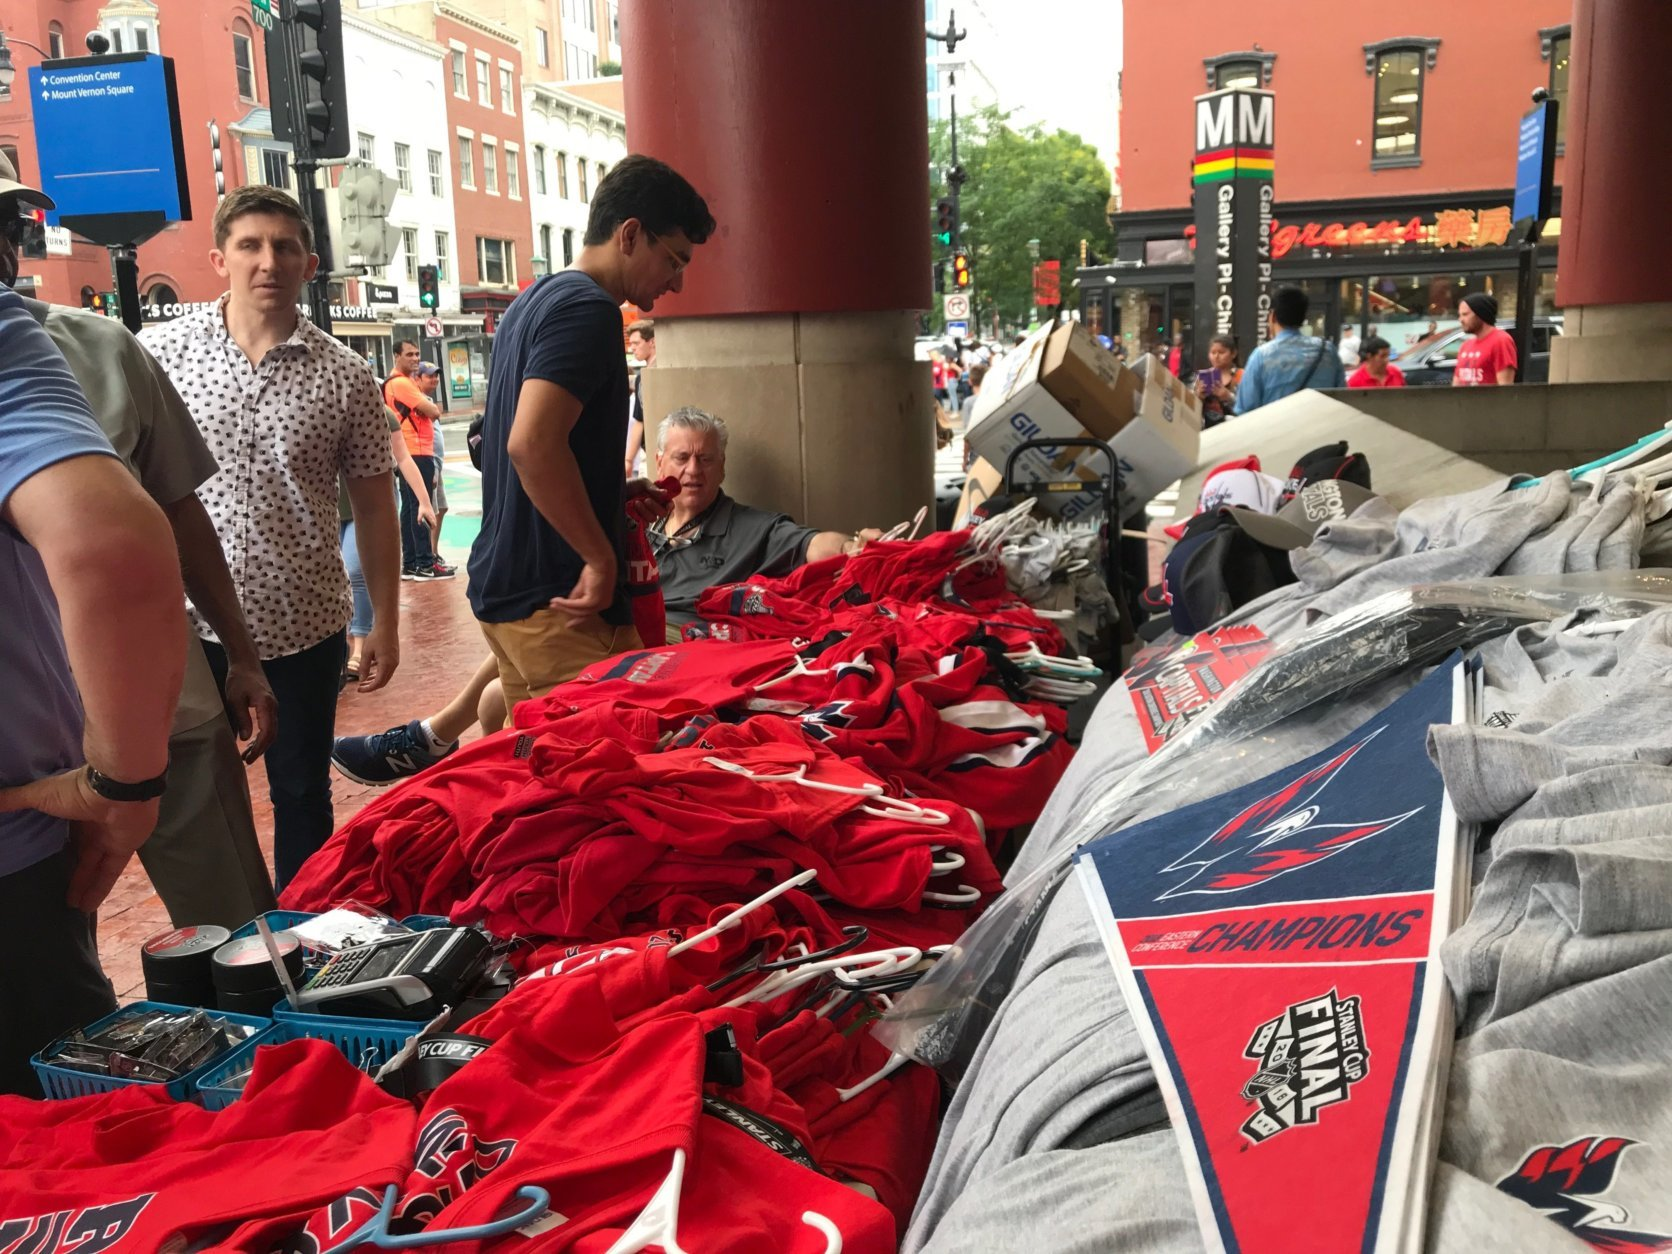 Sidewalks jammed with Caps fans keep vendors busy on Saturday, June 2, 2018. (WTOP/Dick Uliano)